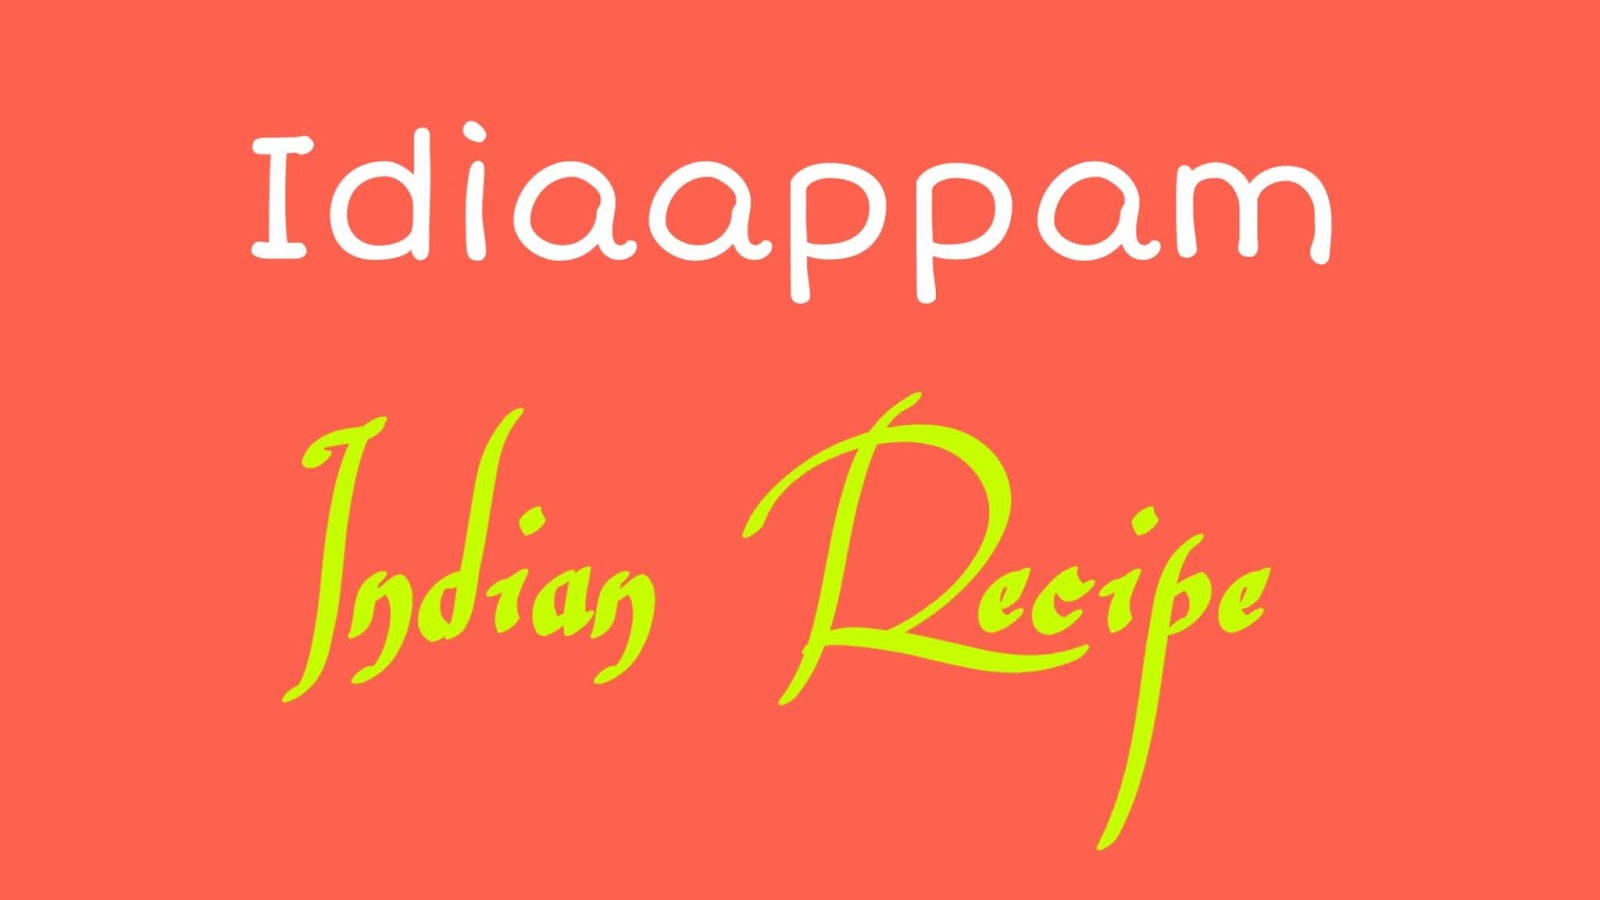 Idiaappam Indian Recipes Ingredients Method